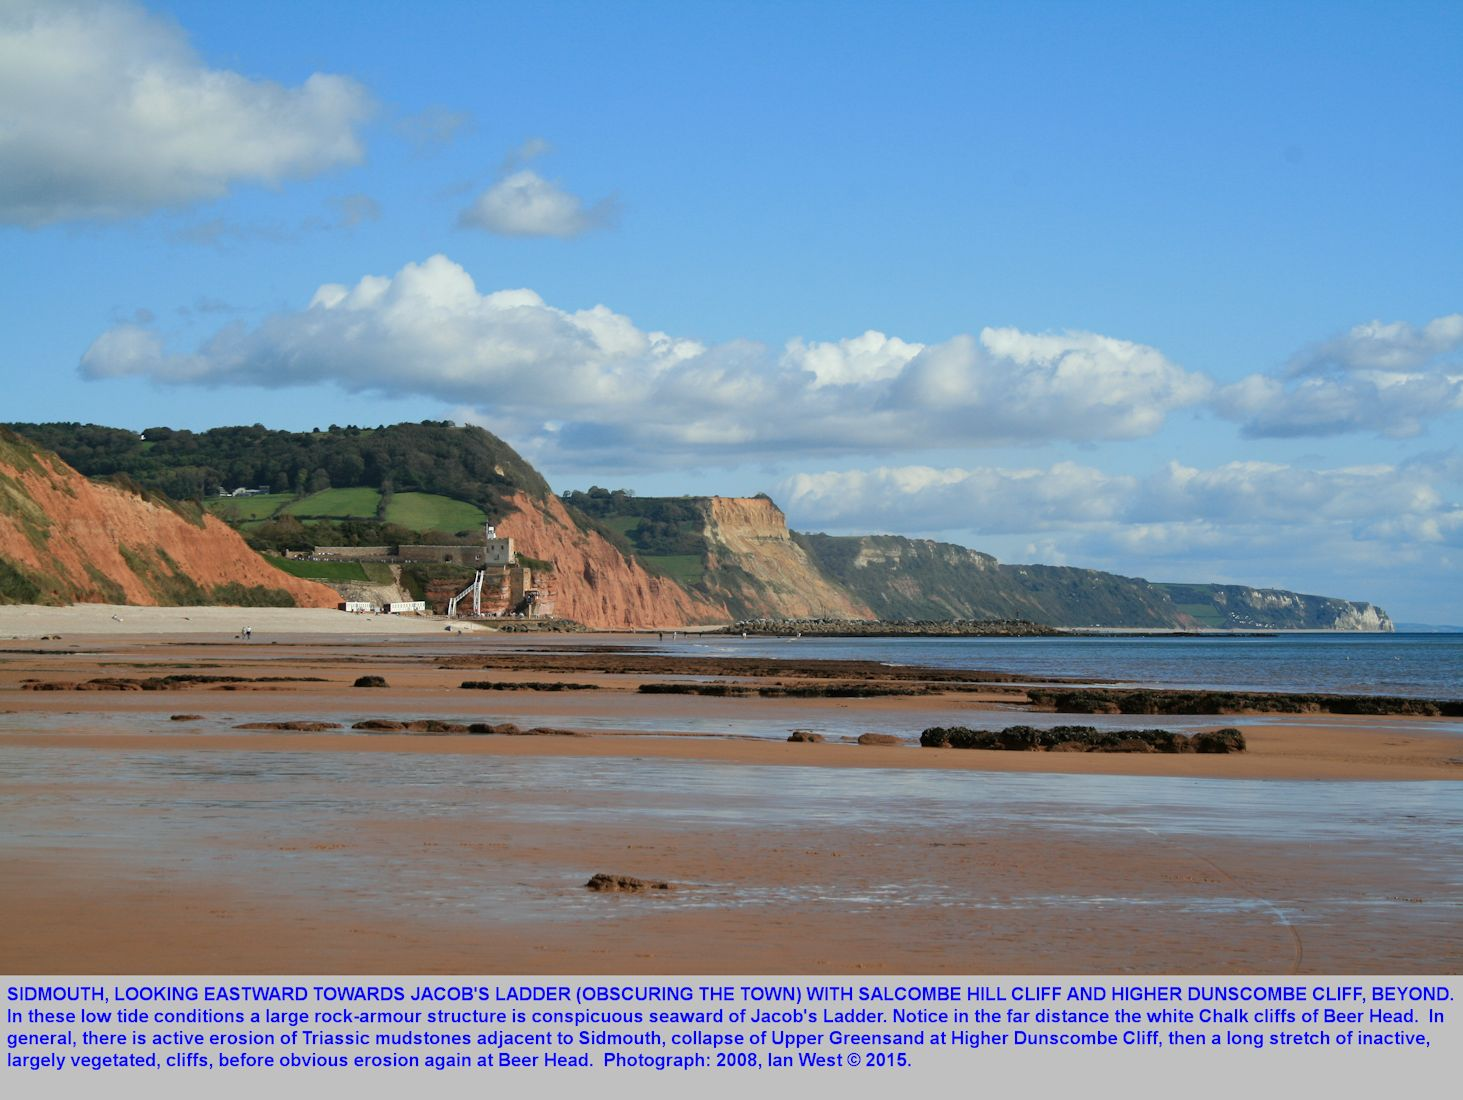 Sidmouth, a view eastward at low tide of Jacobs Ladder and the cliffs to the east of the town, including Salcombe Hill Cliff, Higher Dunscombe Cliff and on to Beer Head